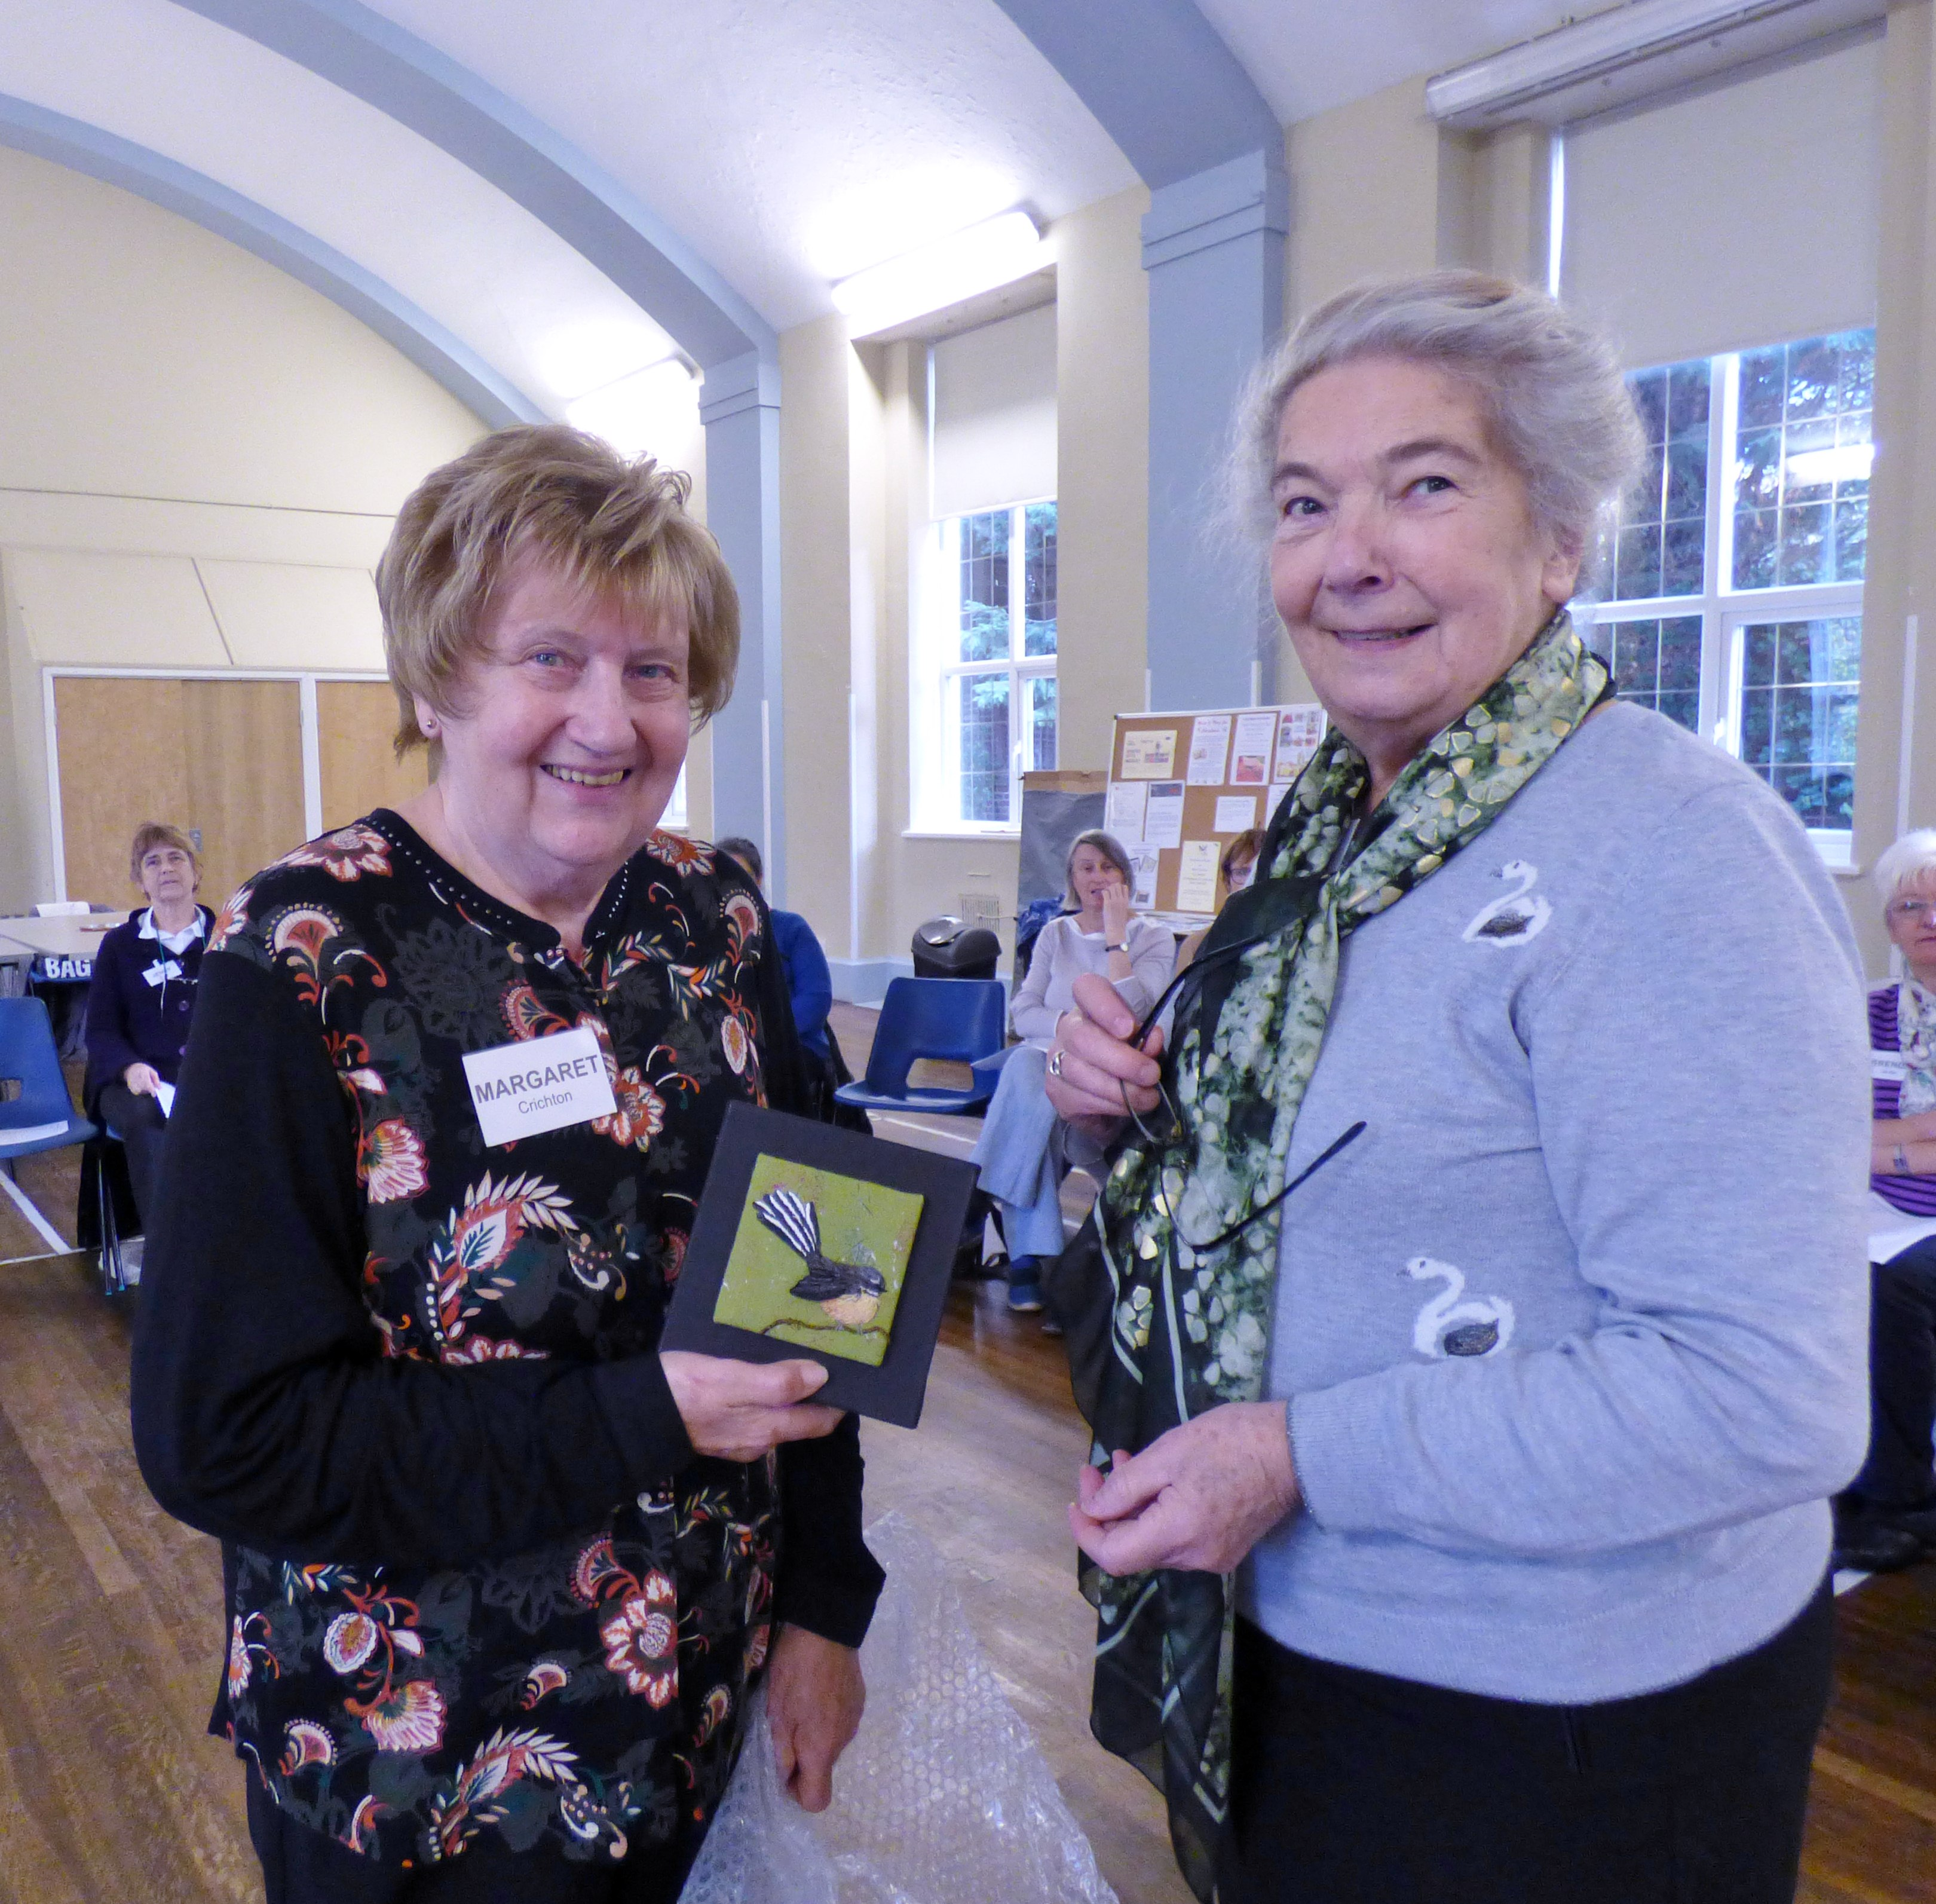 Margaret Crichton was placed second in Visitor's Vote at our Endeavour exhibition 2018. Vicky Williams presented her with an embroidered picture by Caroline Strachan